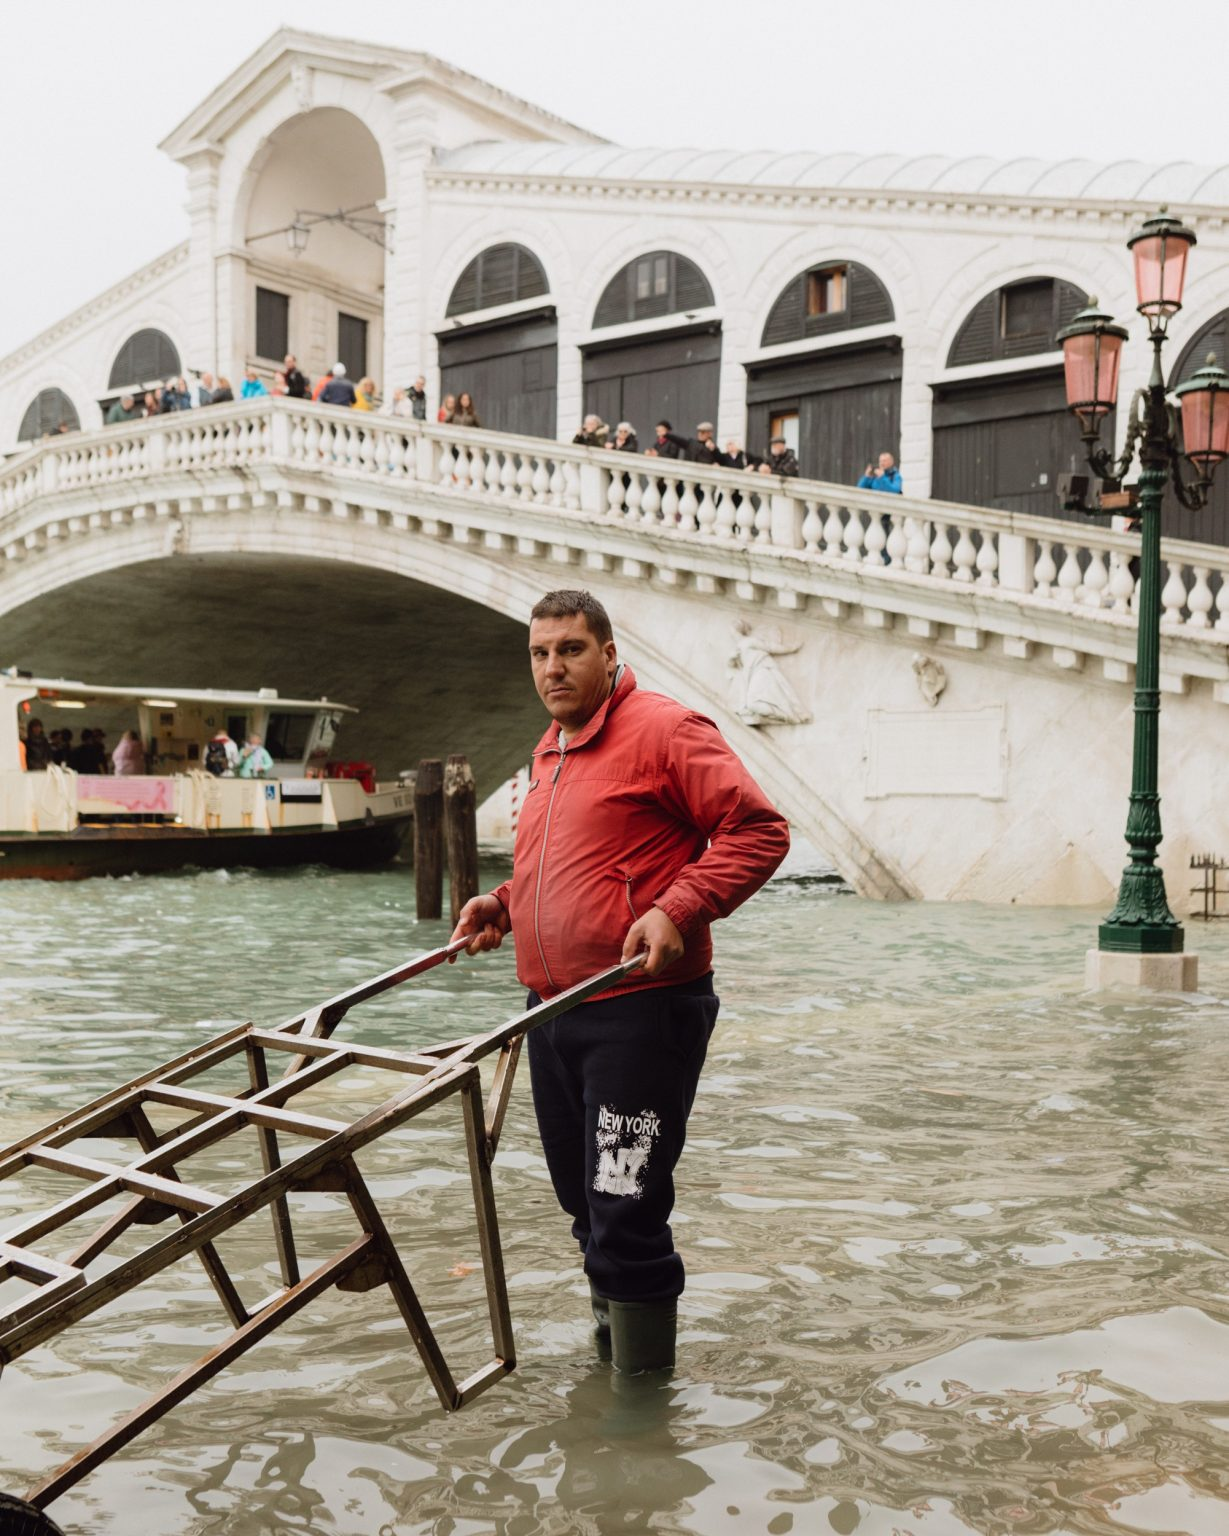 """A man working in front of Rialto Bridge despite the water submerged the area. On the night of the 12th of November 2019, Venice faced one of the most severe flooding of its millennial history. The tide reached 187 centimeters, making it the second highest after the infamous """"Acqua Granda"""" of 1966. Venice, Italy, 2019"""